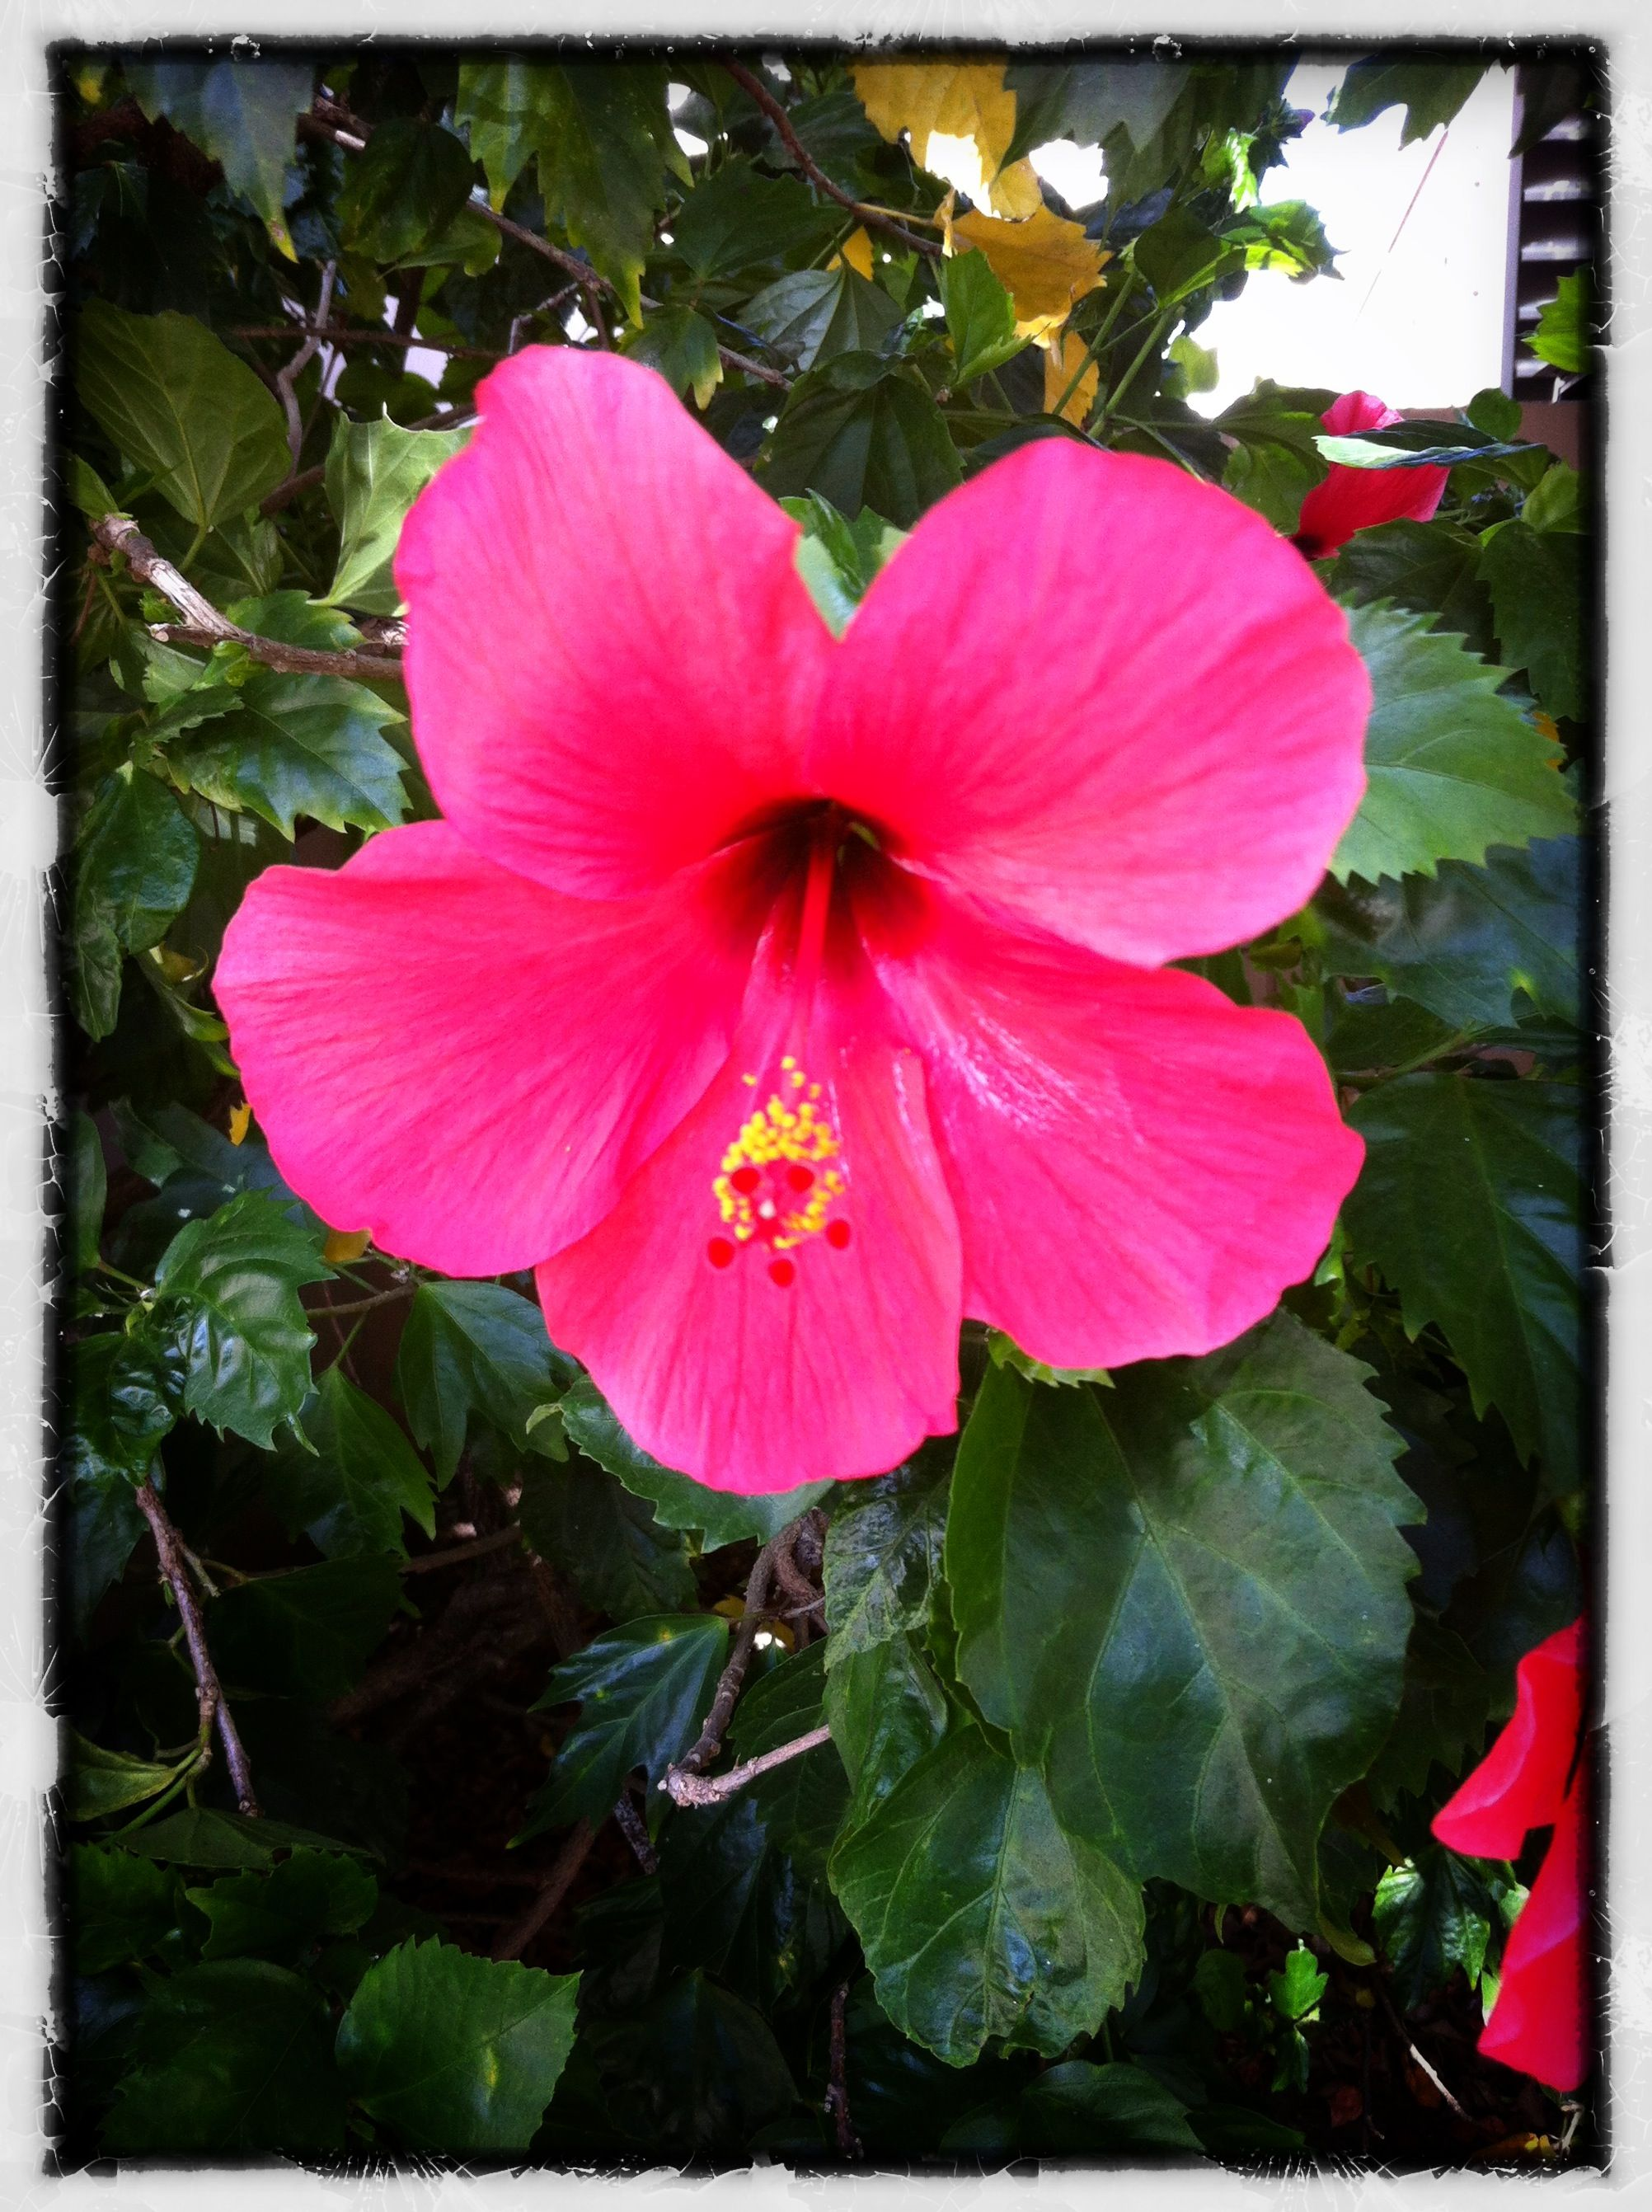 Amapola name used in puerto rico to refer to the hibiscus flower amapola name used in puerto rico to refer to the hibiscus flower not to be confused with flor de maga which is the official flower of puerto rico izmirmasajfo